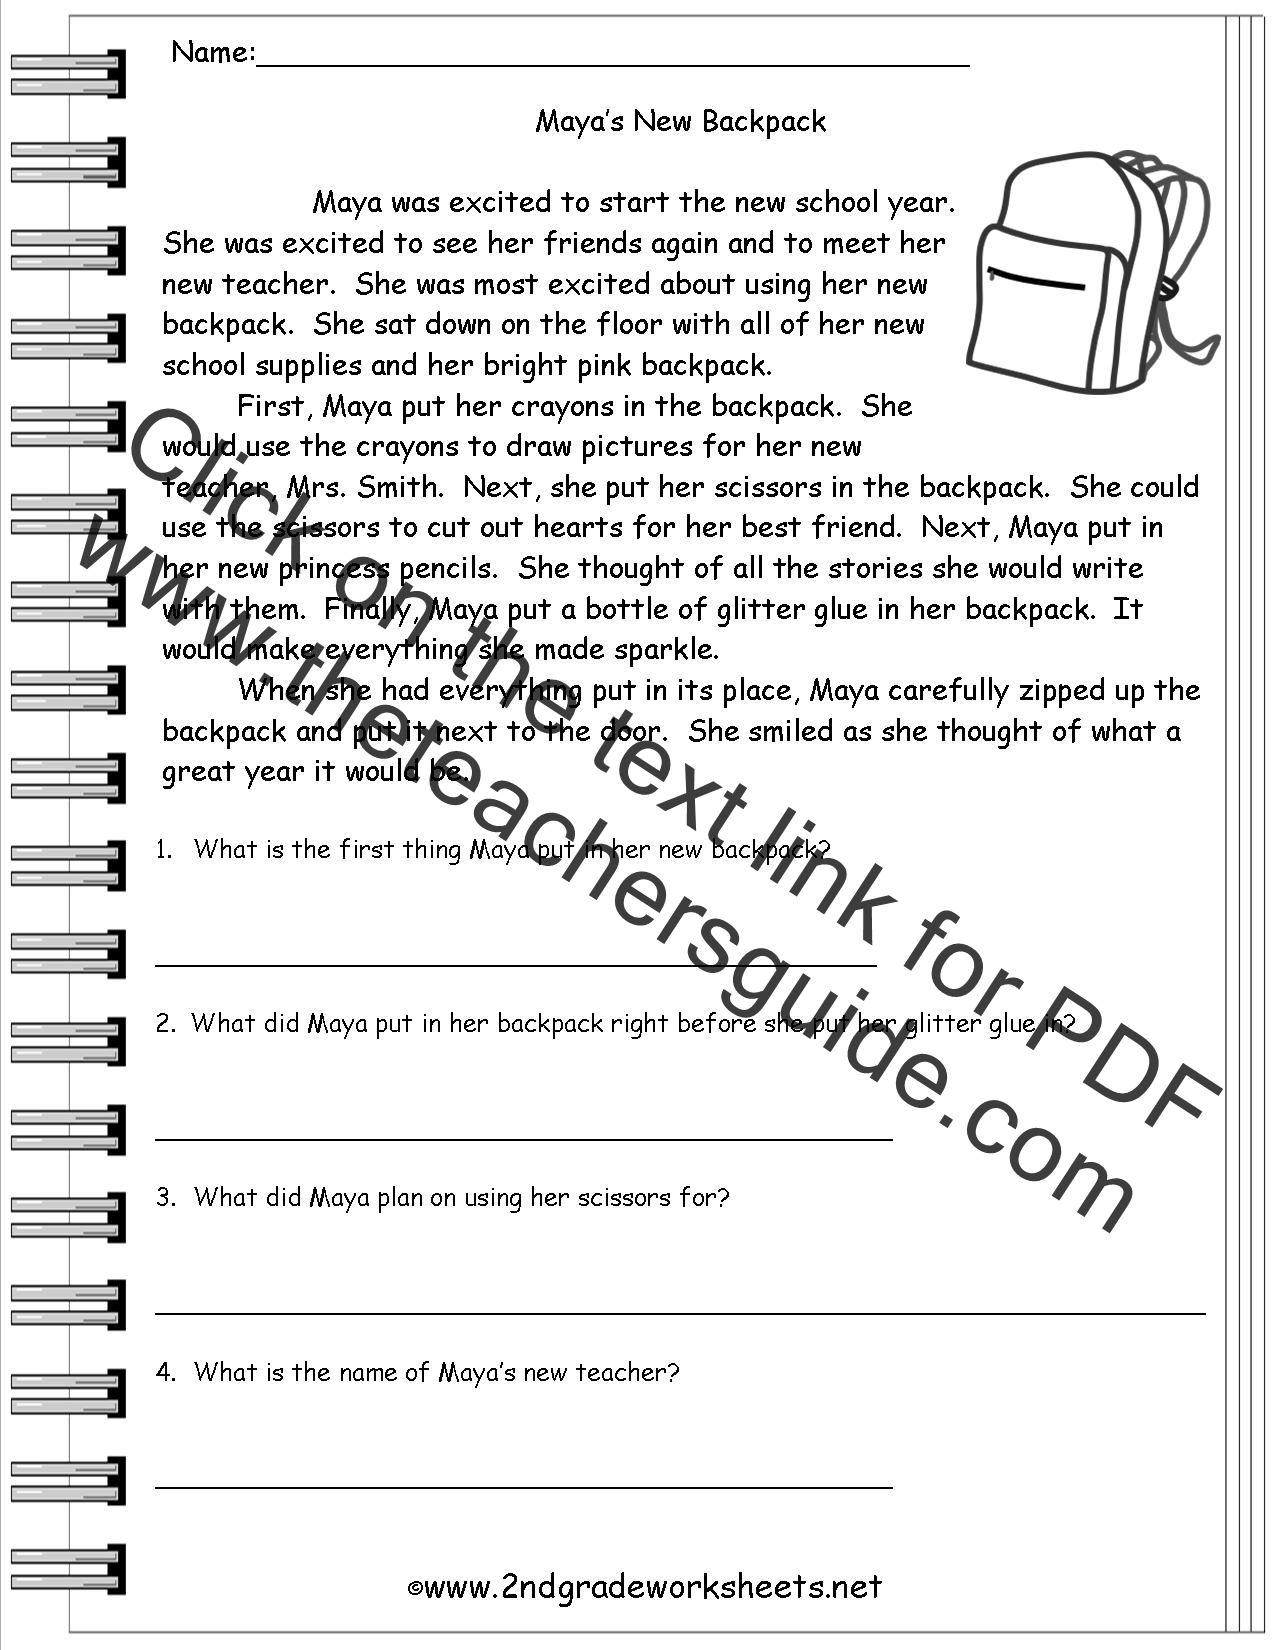 Worksheet Reading Passages For Kids reading worksheeets literature worksheets